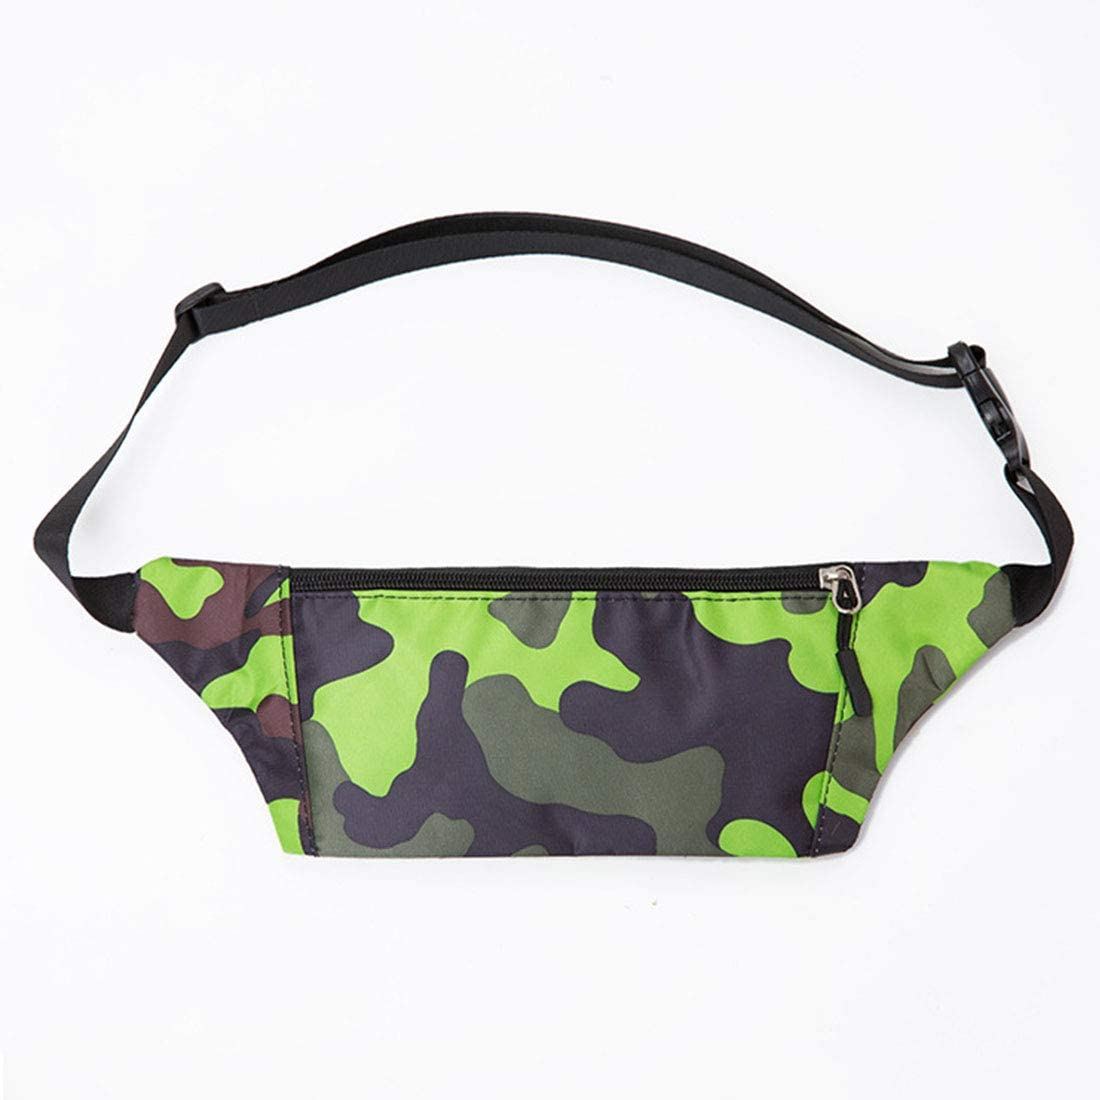 WENNEW Outdoor Sports Camouflage Running Men Oxford Spinning Multifunctional Raincoat Fluid Phone Close-Fitting Fanny Pack (Color : Green)